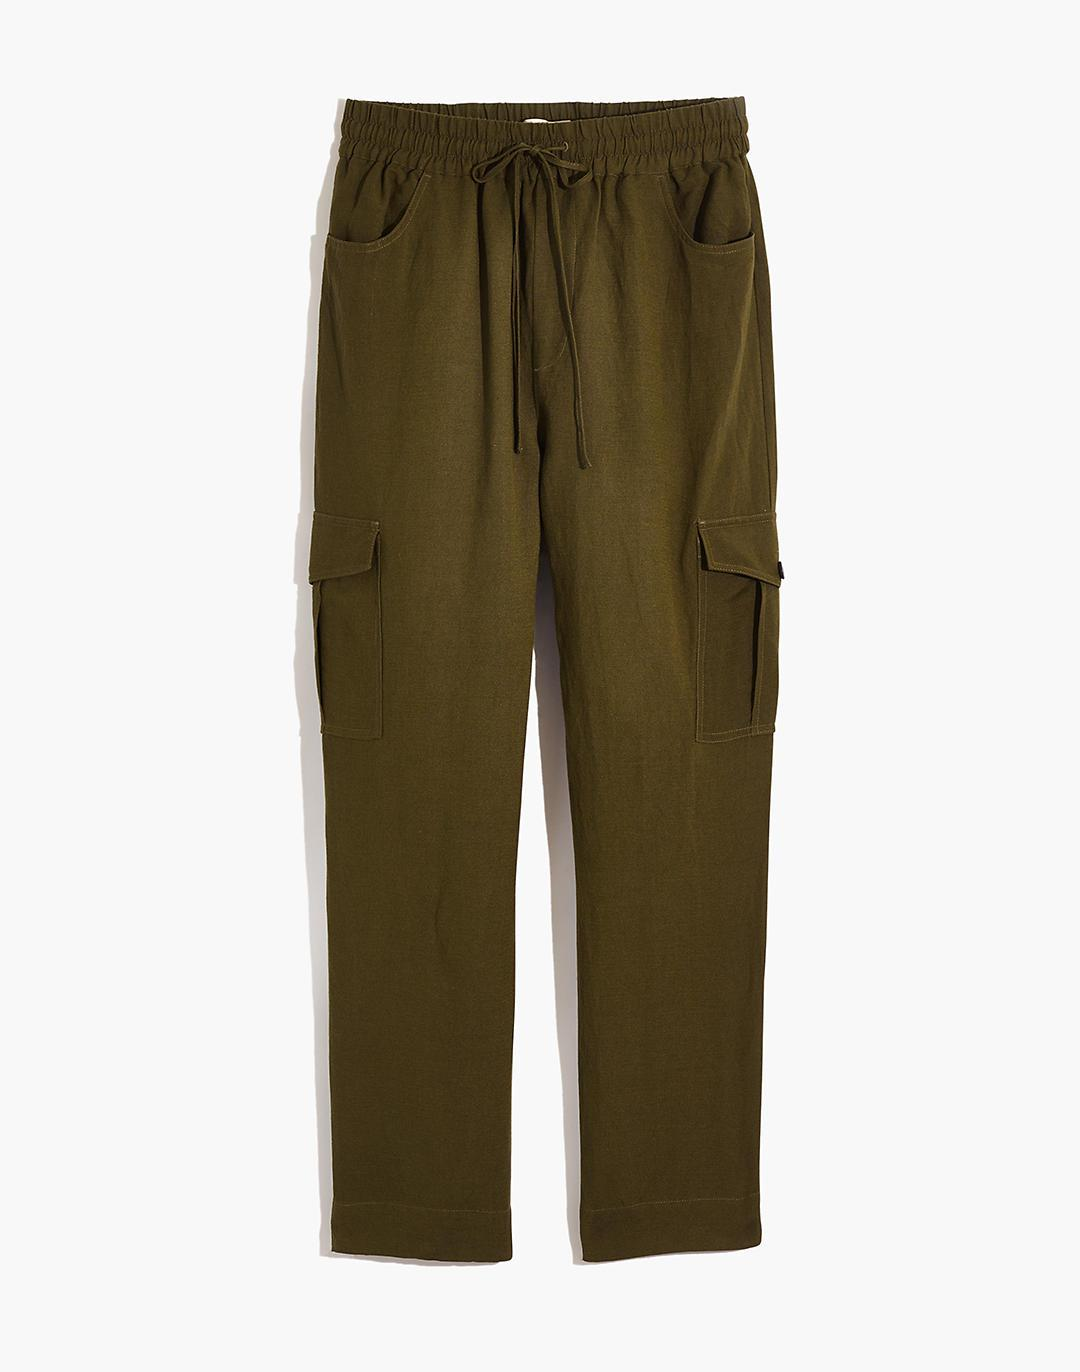 Tapered Huston Cargo Pull-On Crop Pants 3